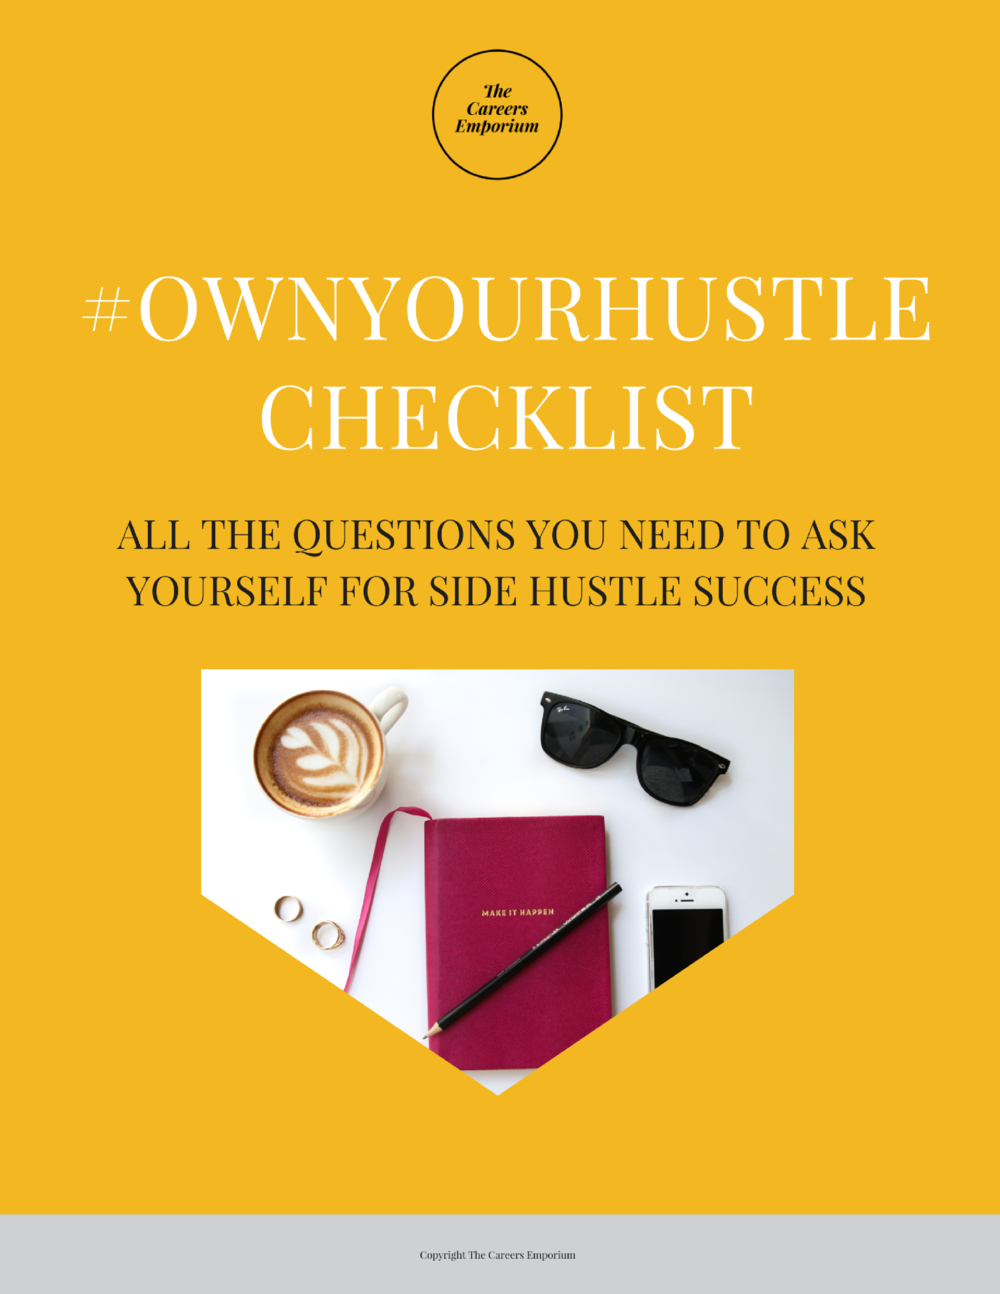 FREE CHECKLIST - Check the boxes to get your Side Hustle humming